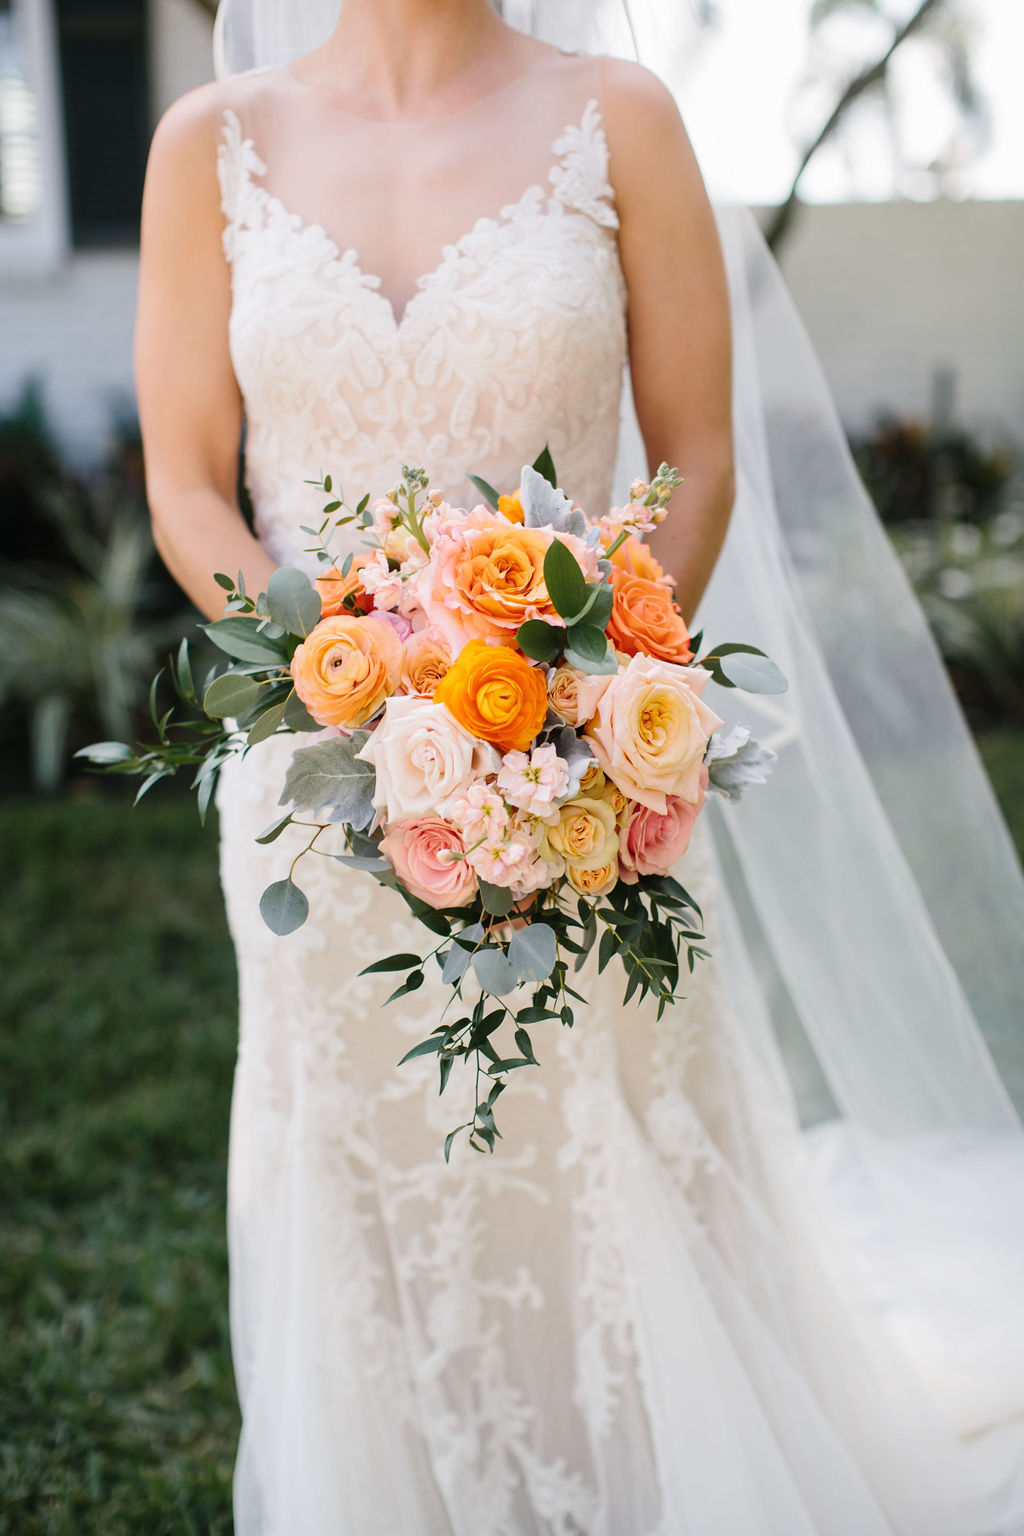 INSTAGRAM Romantic Whimsical Bride in Lace Watters with Illusion Neckline Wedding Dress Holding Blush Pink and Orange Roses, Dusty Miller Leaves, Greenery Floral Bridal Bouquet | Tampa Bay Wedding Florist Bruce Wayne Florals